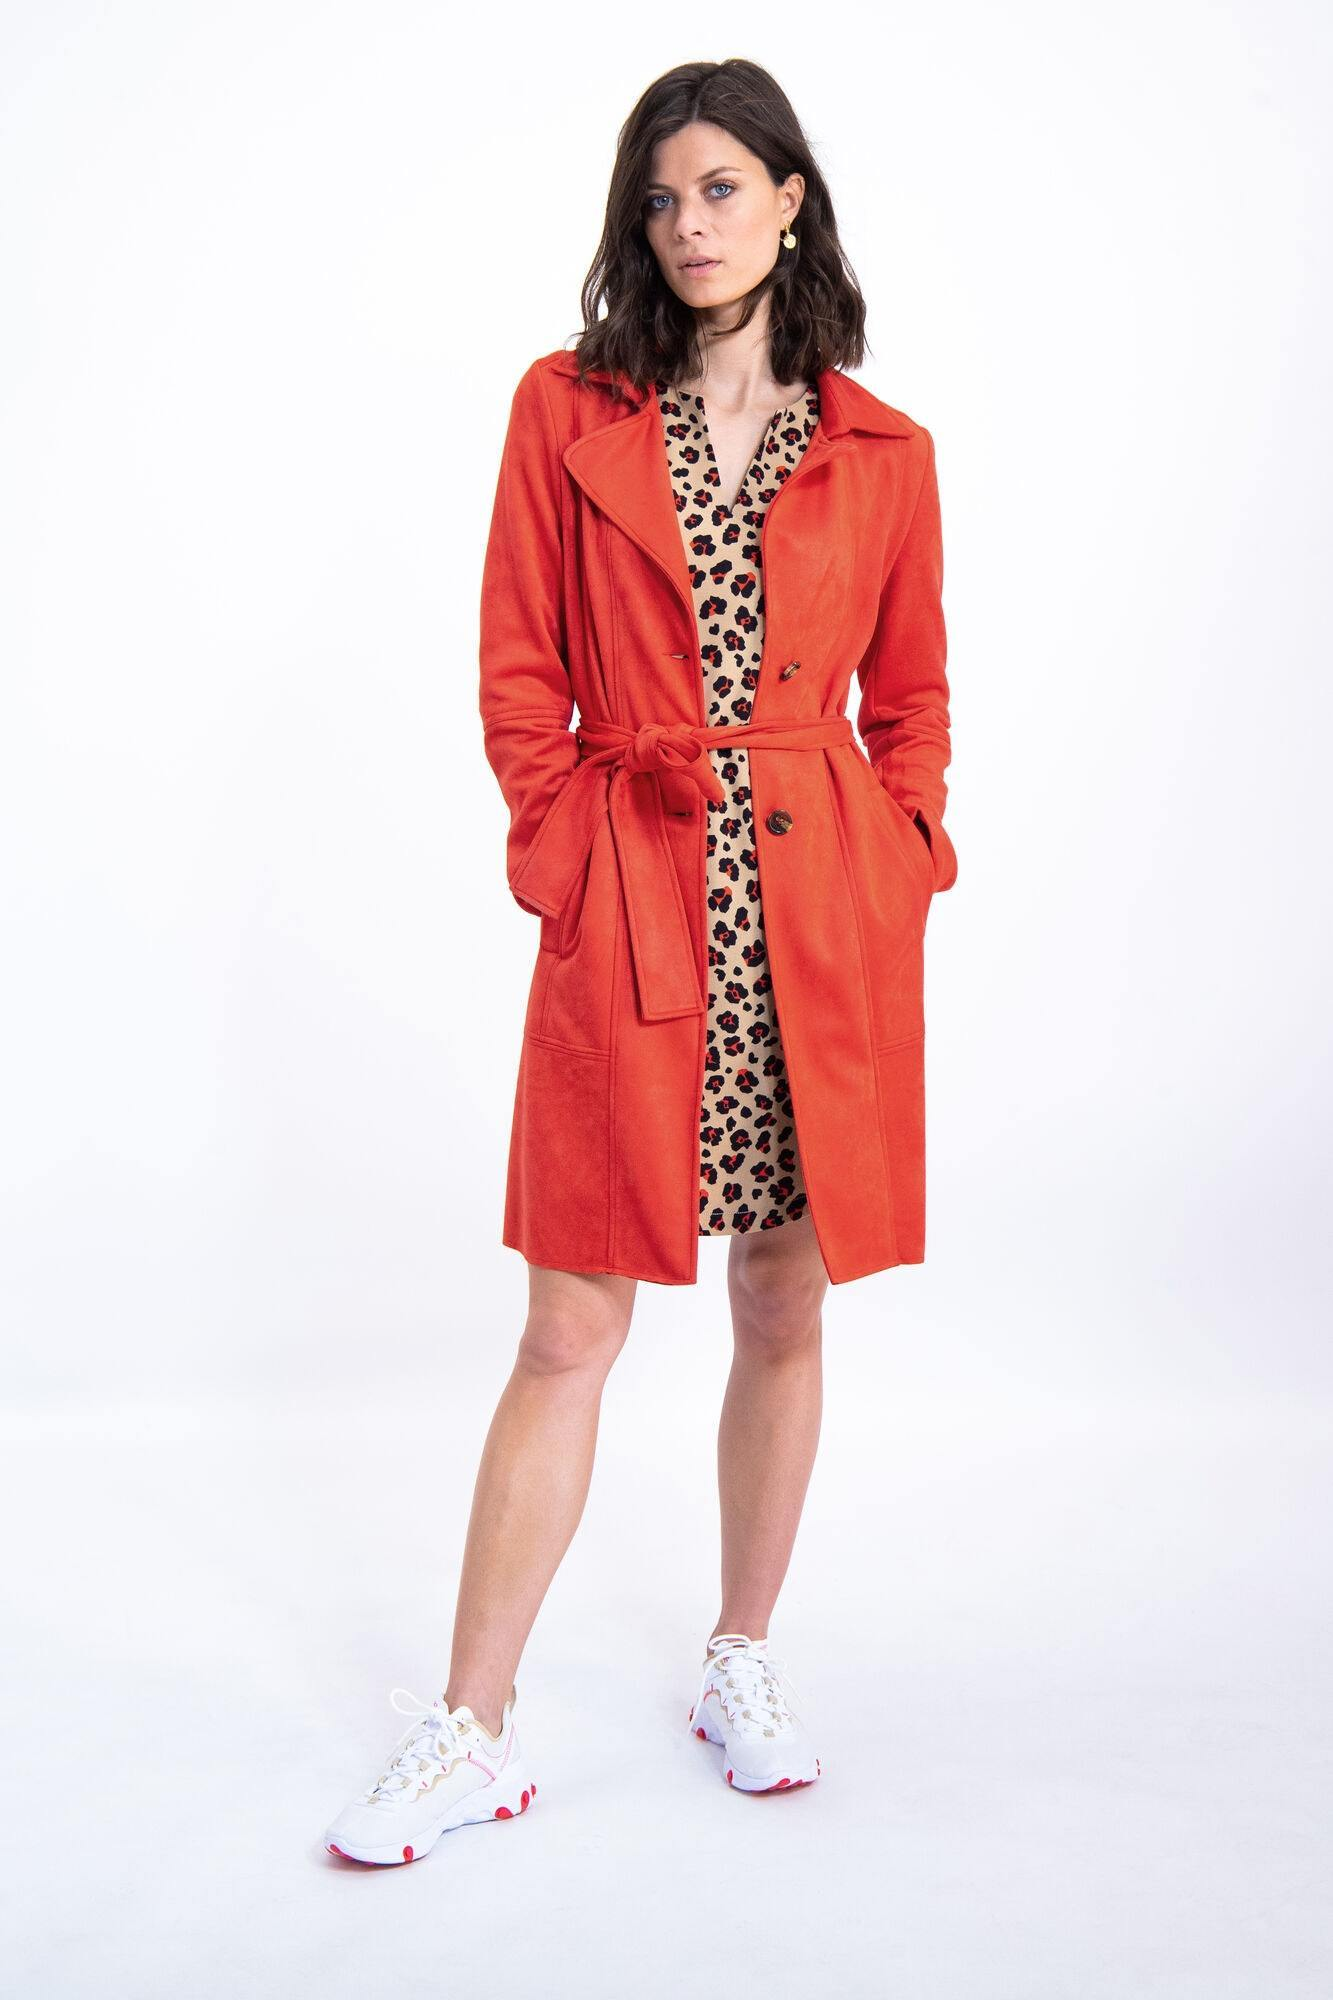 GARCIA BROWN DRESS WITH LEOPARD PRINT Image